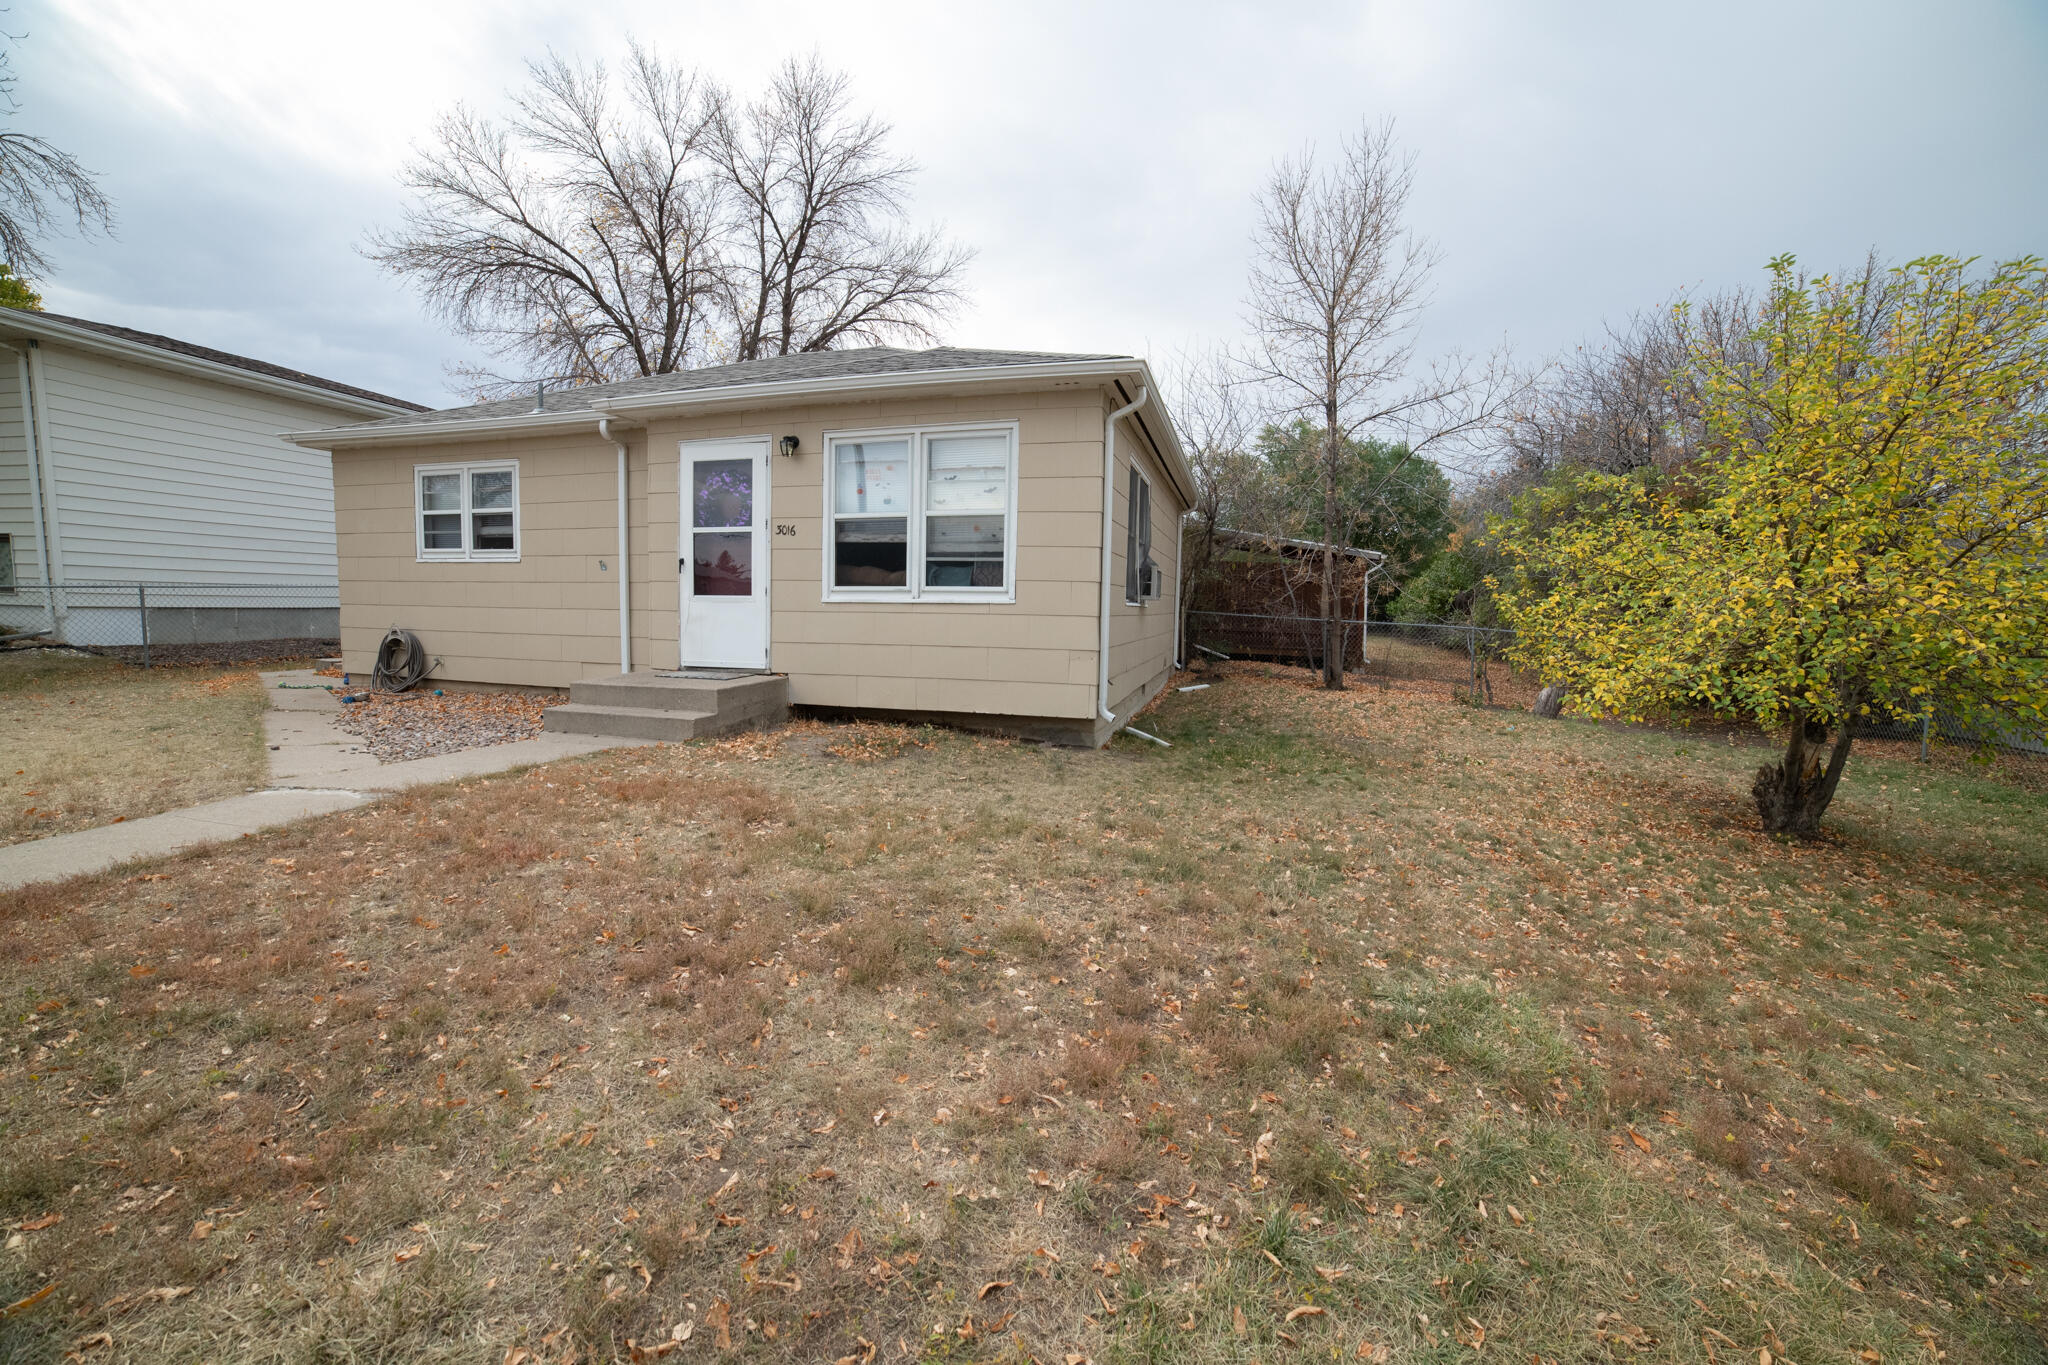 Investment opportunity! Two homes on one lot on east side of town. Front home 3016 2 Bedroom 1 bathroom fenced yard, on street parking.Back home 3018 2 bedroom 1 bathroom, fenced yard, off street parking. call your real estate professional before its gone!